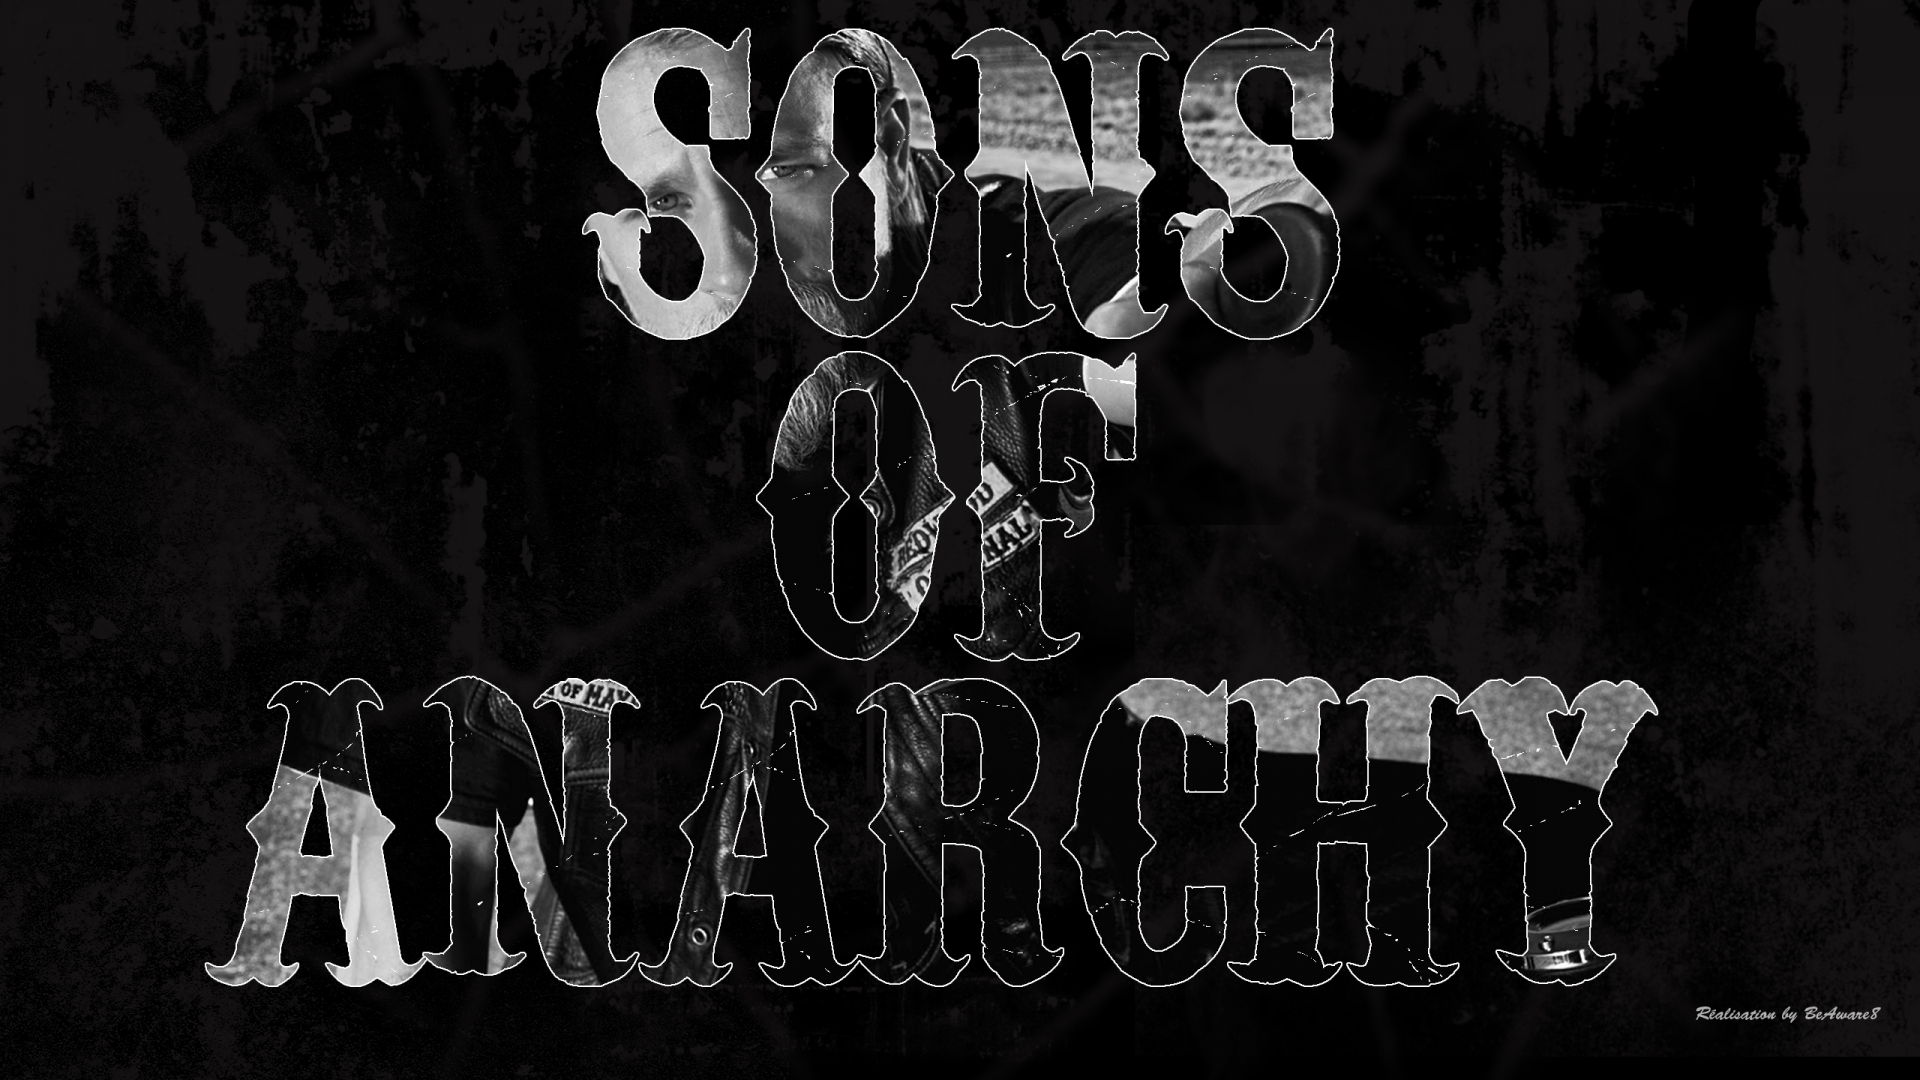 Free Download Sons Of Anarchy Typo By Beaware8 2560x1440 For